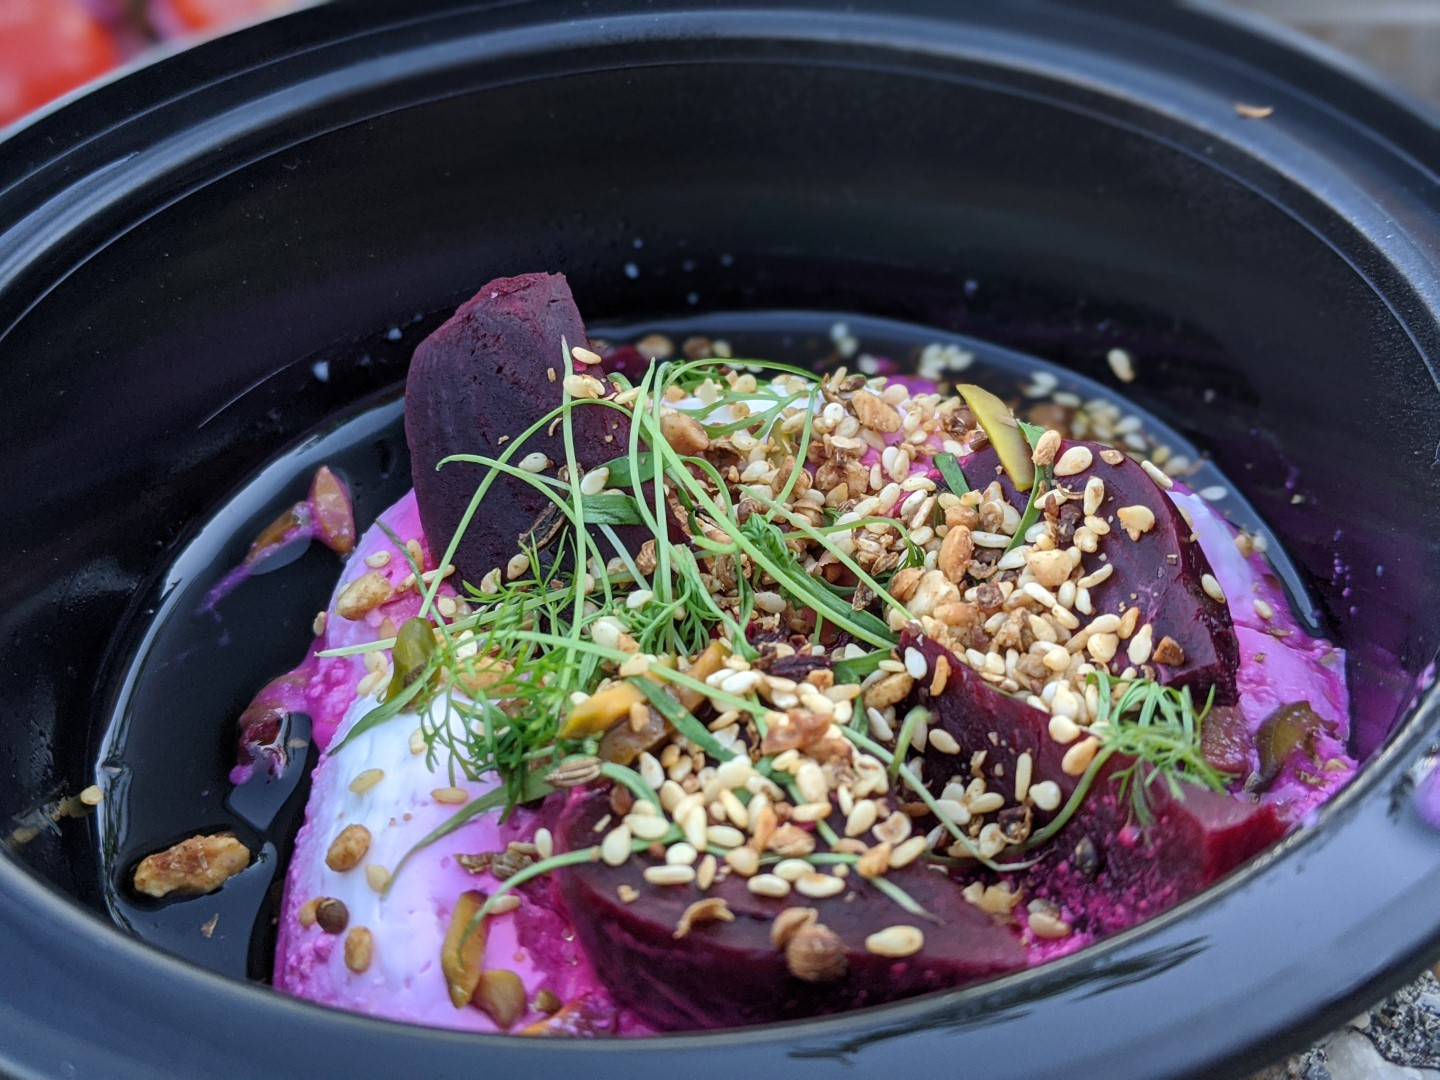 Roasted Red Beets with Dukkah